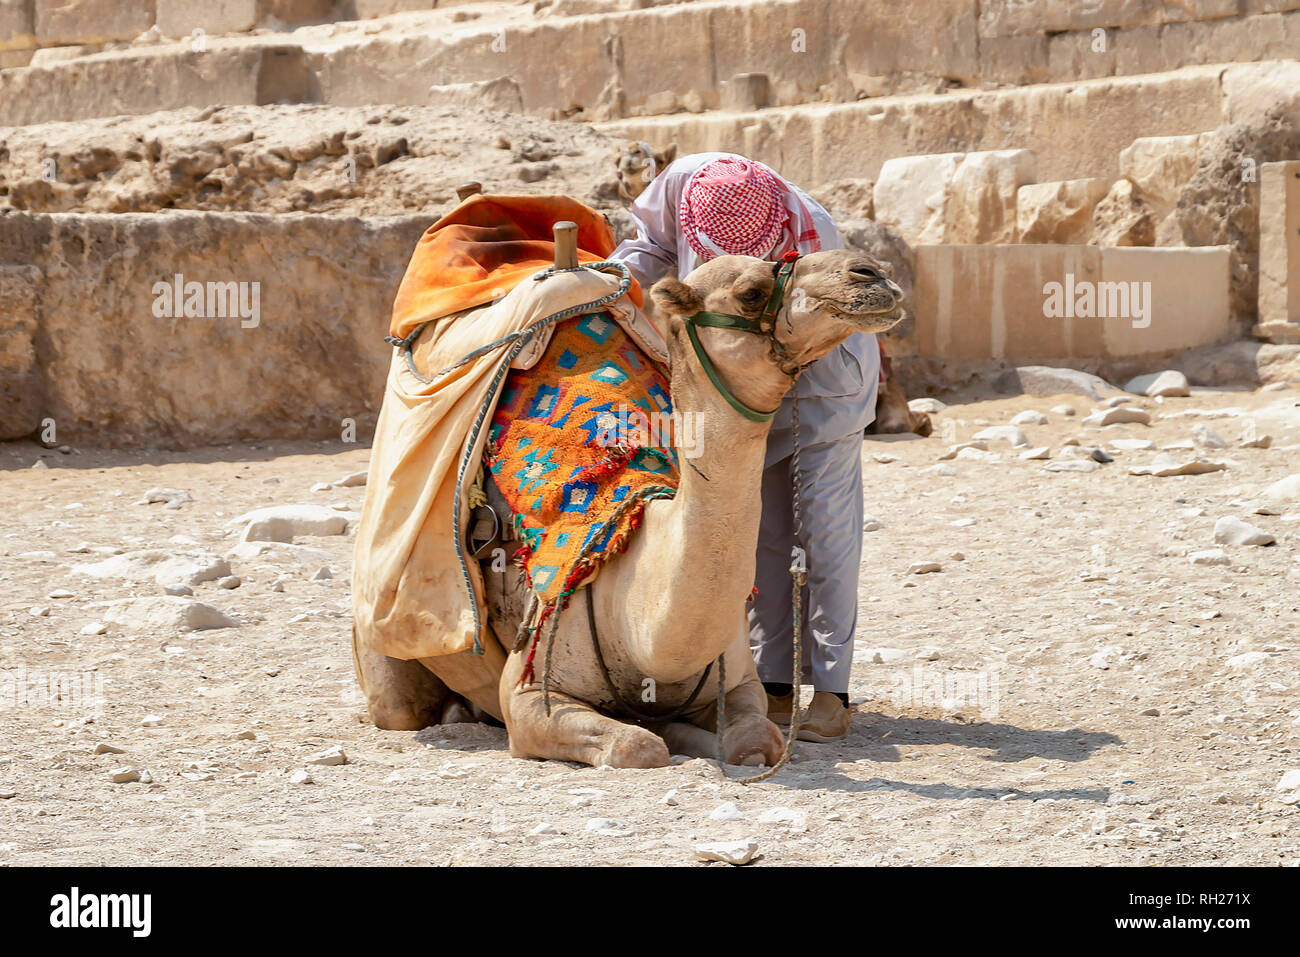 Bedouin with camel for tourists near pyramids in Giza desert, Egypt Stock Photo